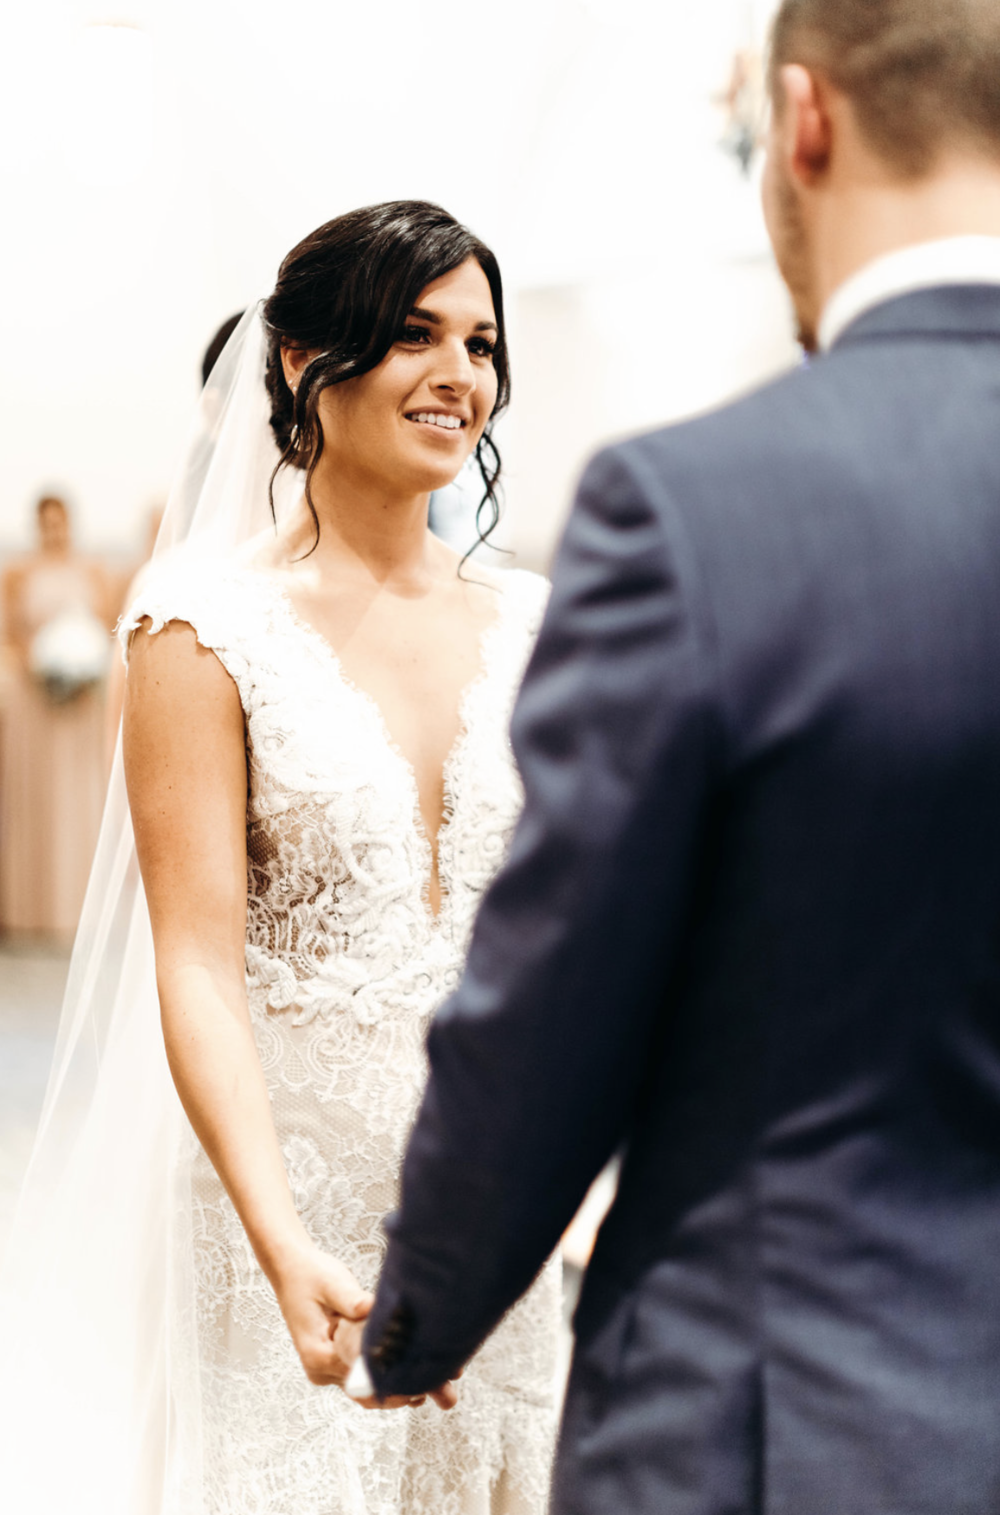 Valerie-and-TJ-McConnell-Wedding-Coordination-by-Cassandra-Clair-Event-Prep-Pittsburgh-Wedding-30.png